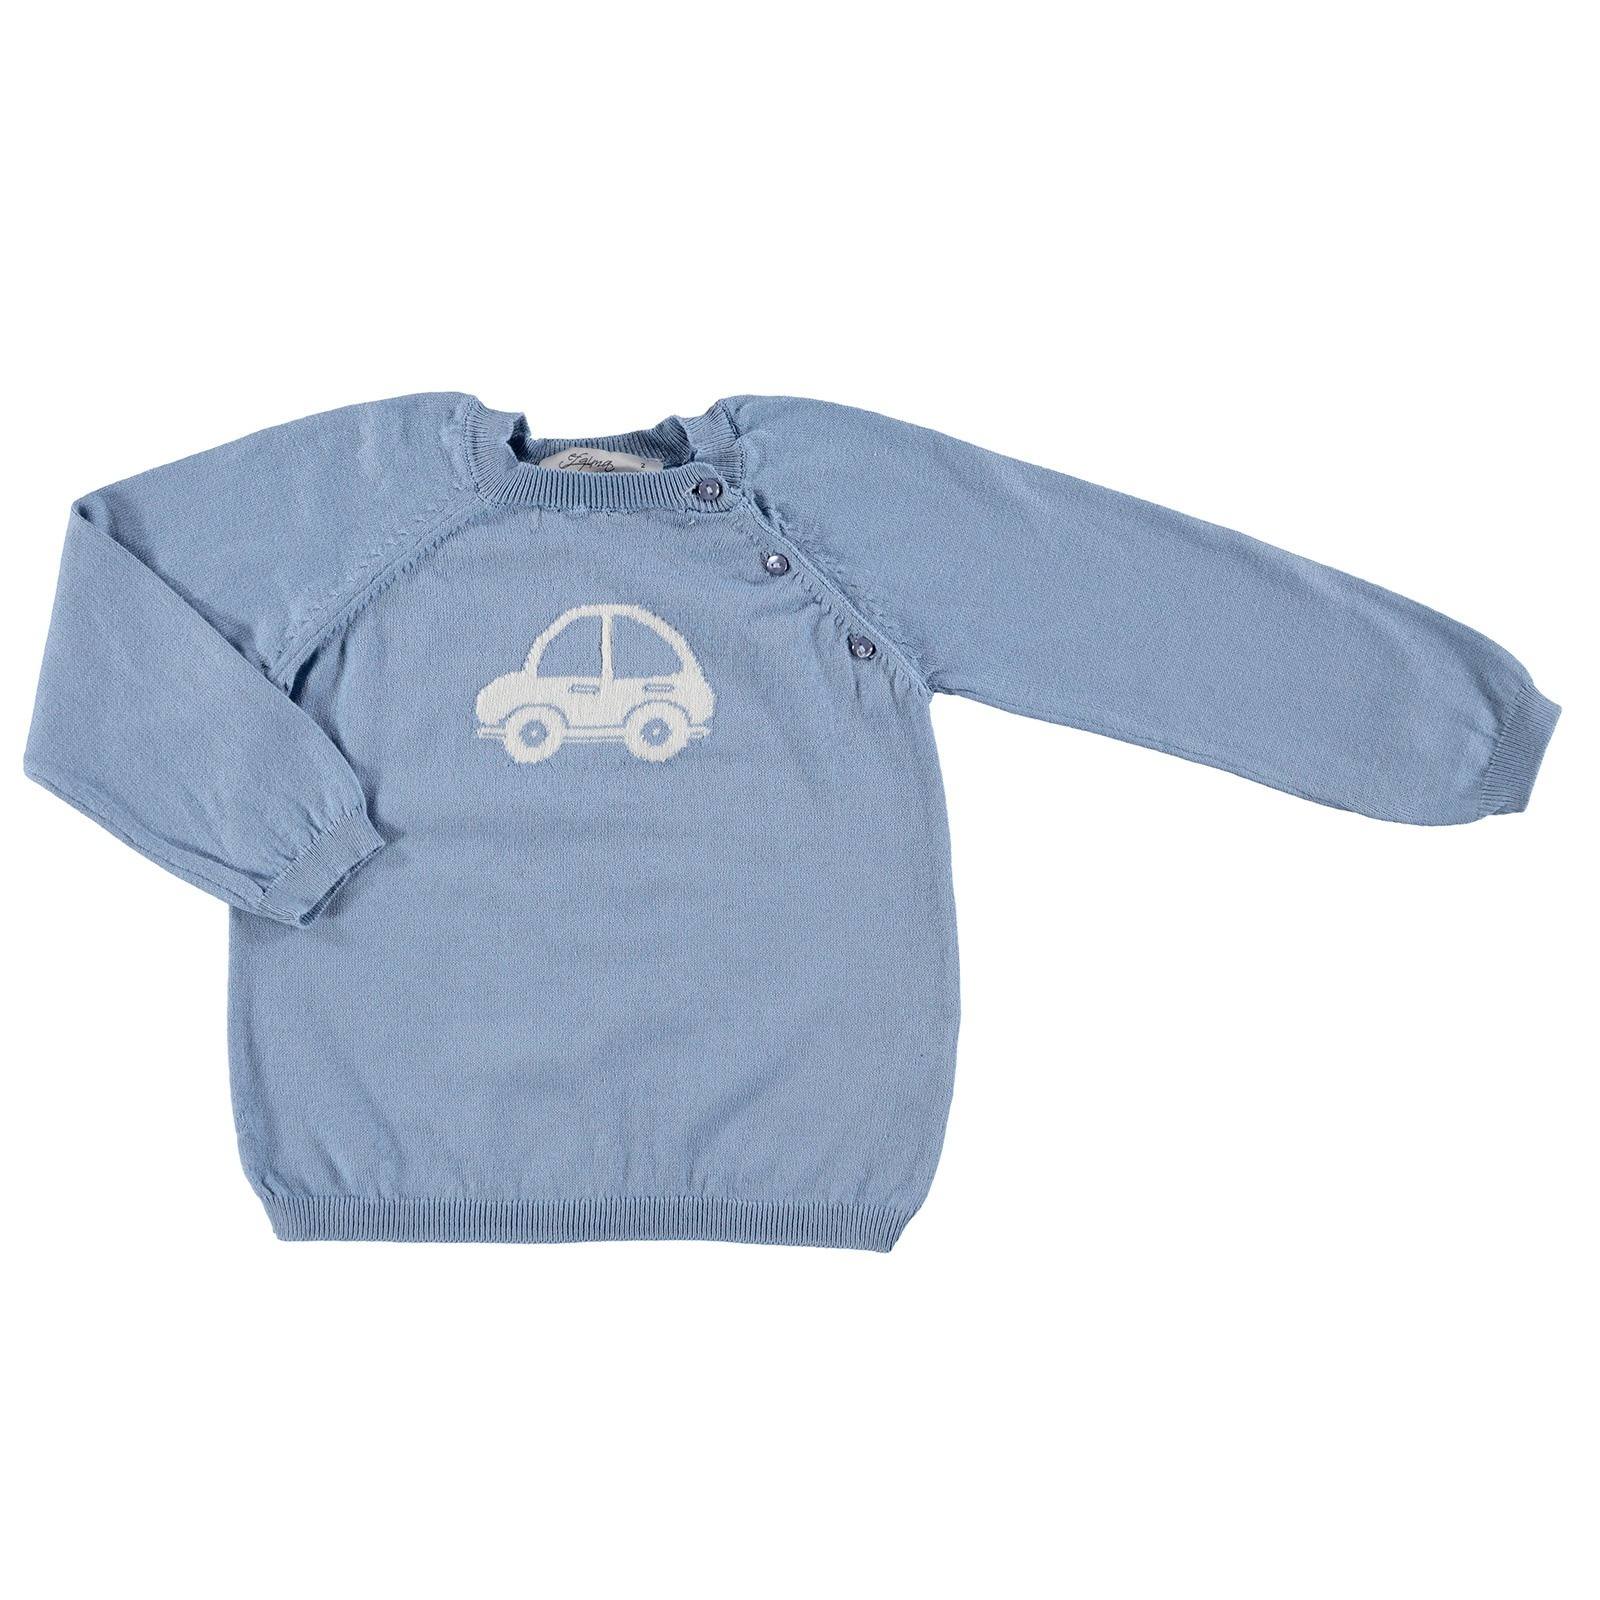 Ebebek Efgima Baby Winter Car Patterned Jumper